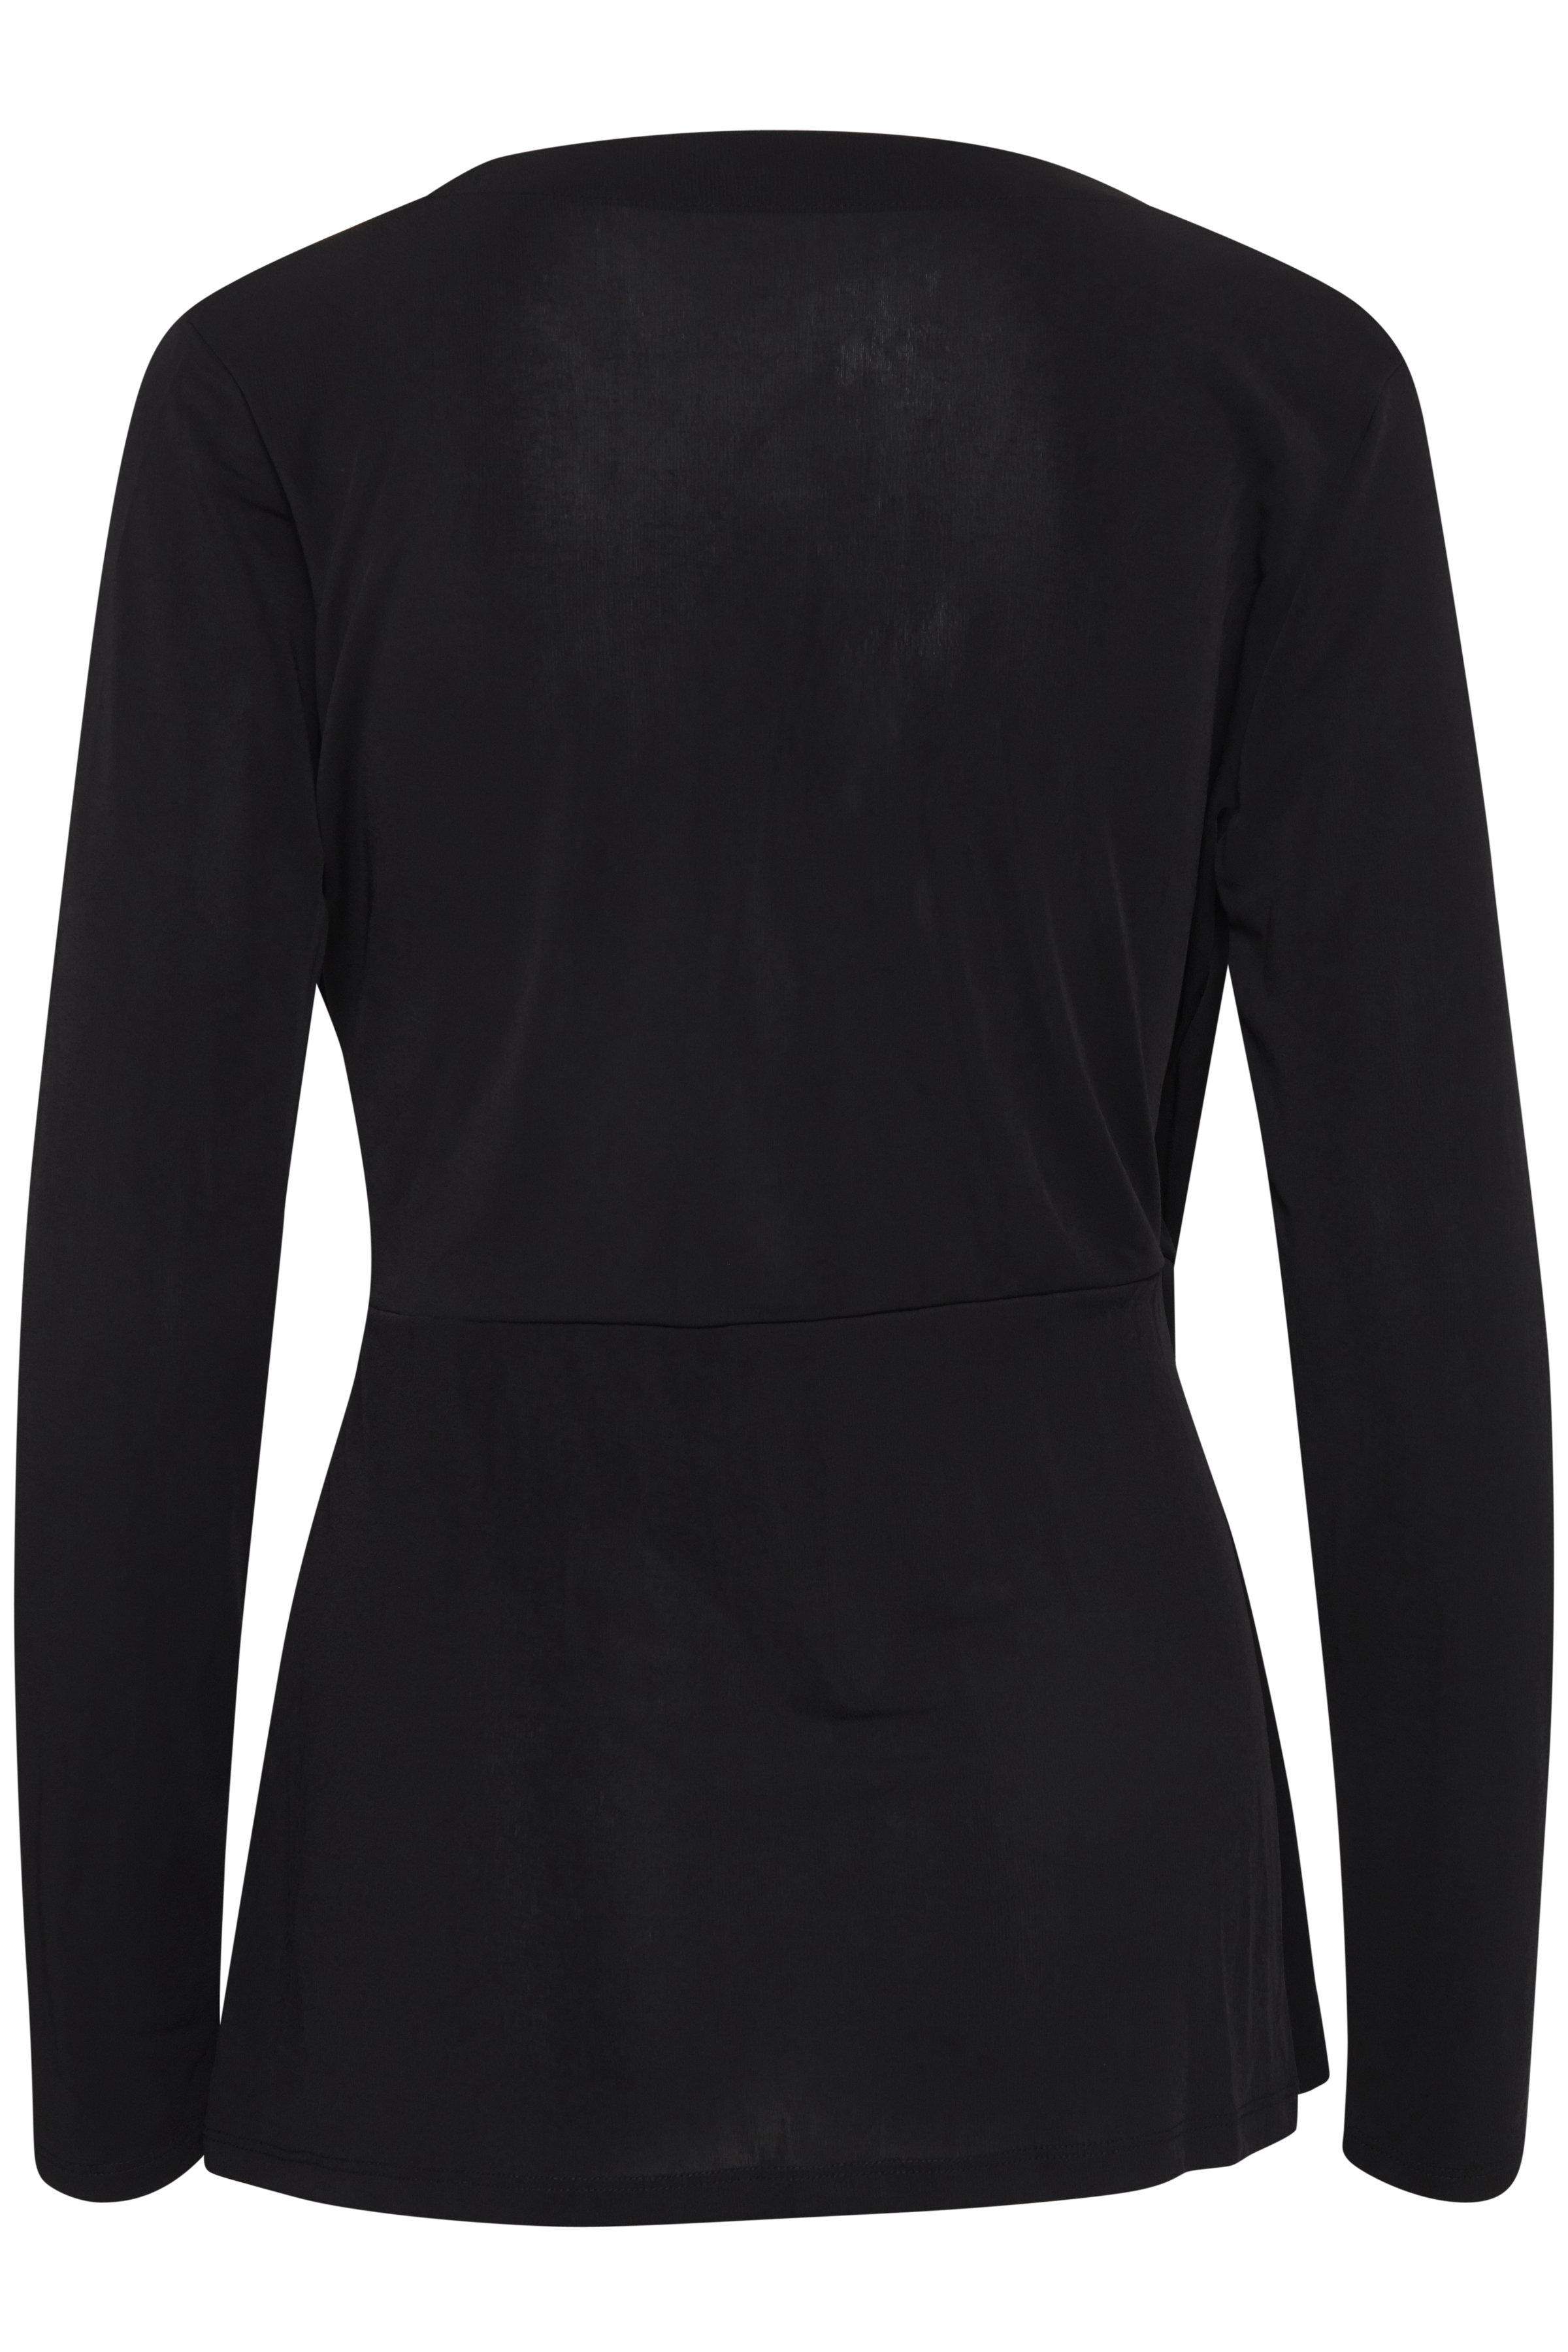 Black Long sleeved T-shirt from b.young – Buy Black Long sleeved T-shirt from size XS-XL here